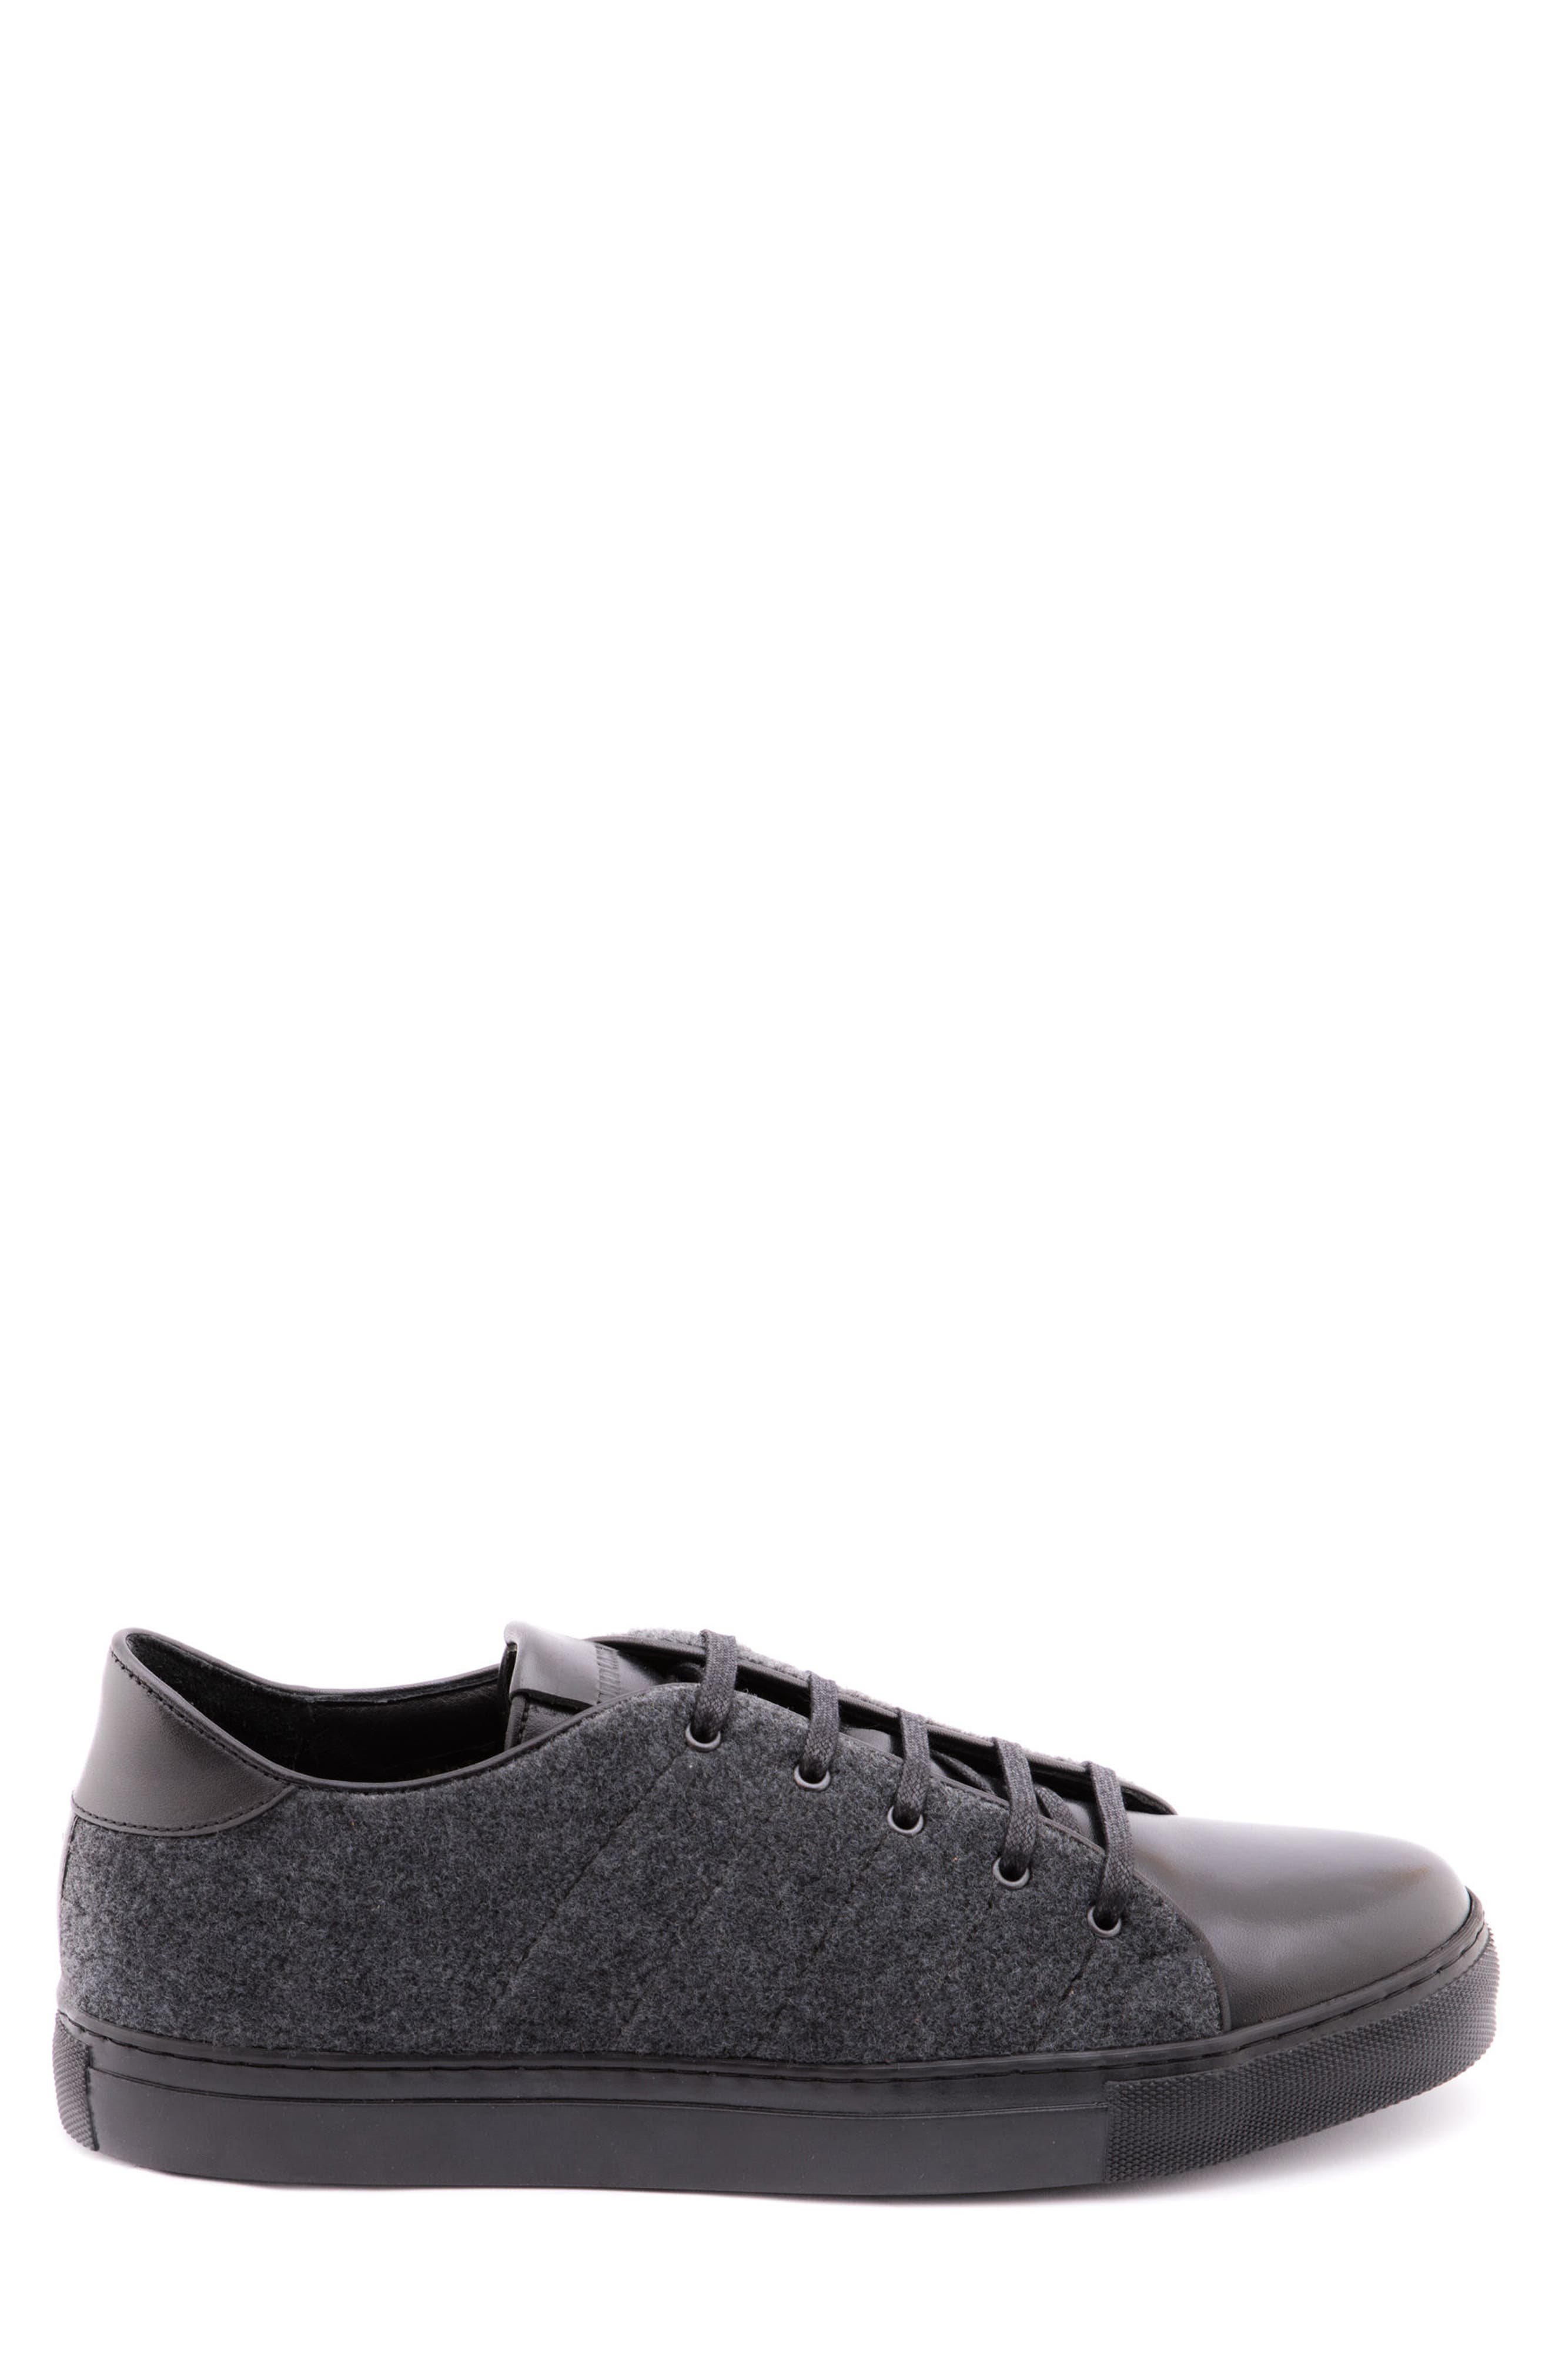 Travis Leather Sneaker,                             Alternate thumbnail 3, color,                             Grey